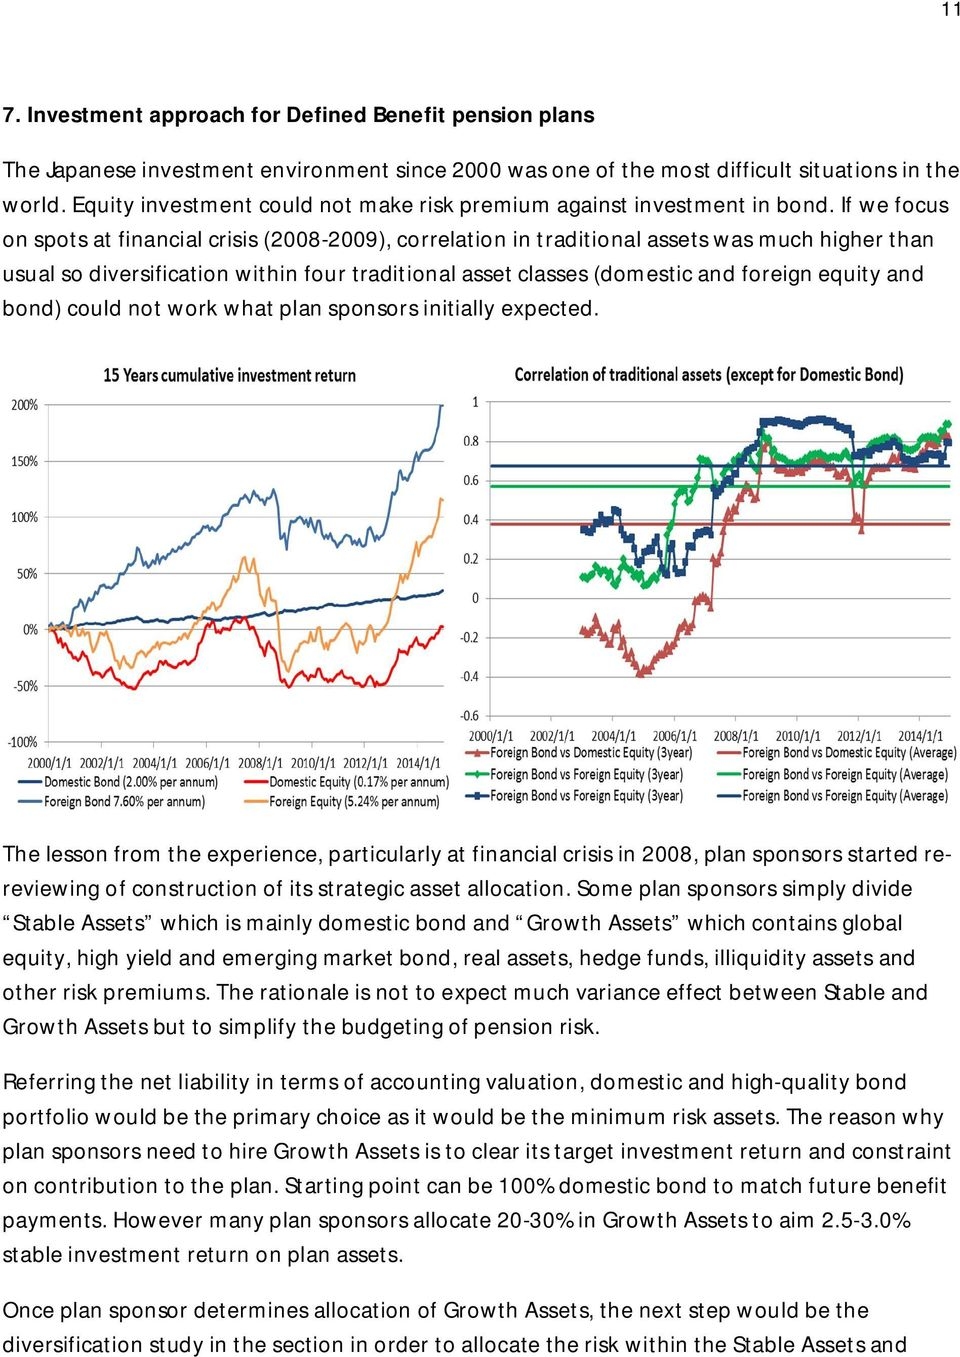 If we focus on spots at financial crisis (2008-2009), correlation in traditional assets was much higher than usual so diversification within four traditional asset classes (domestic and foreign